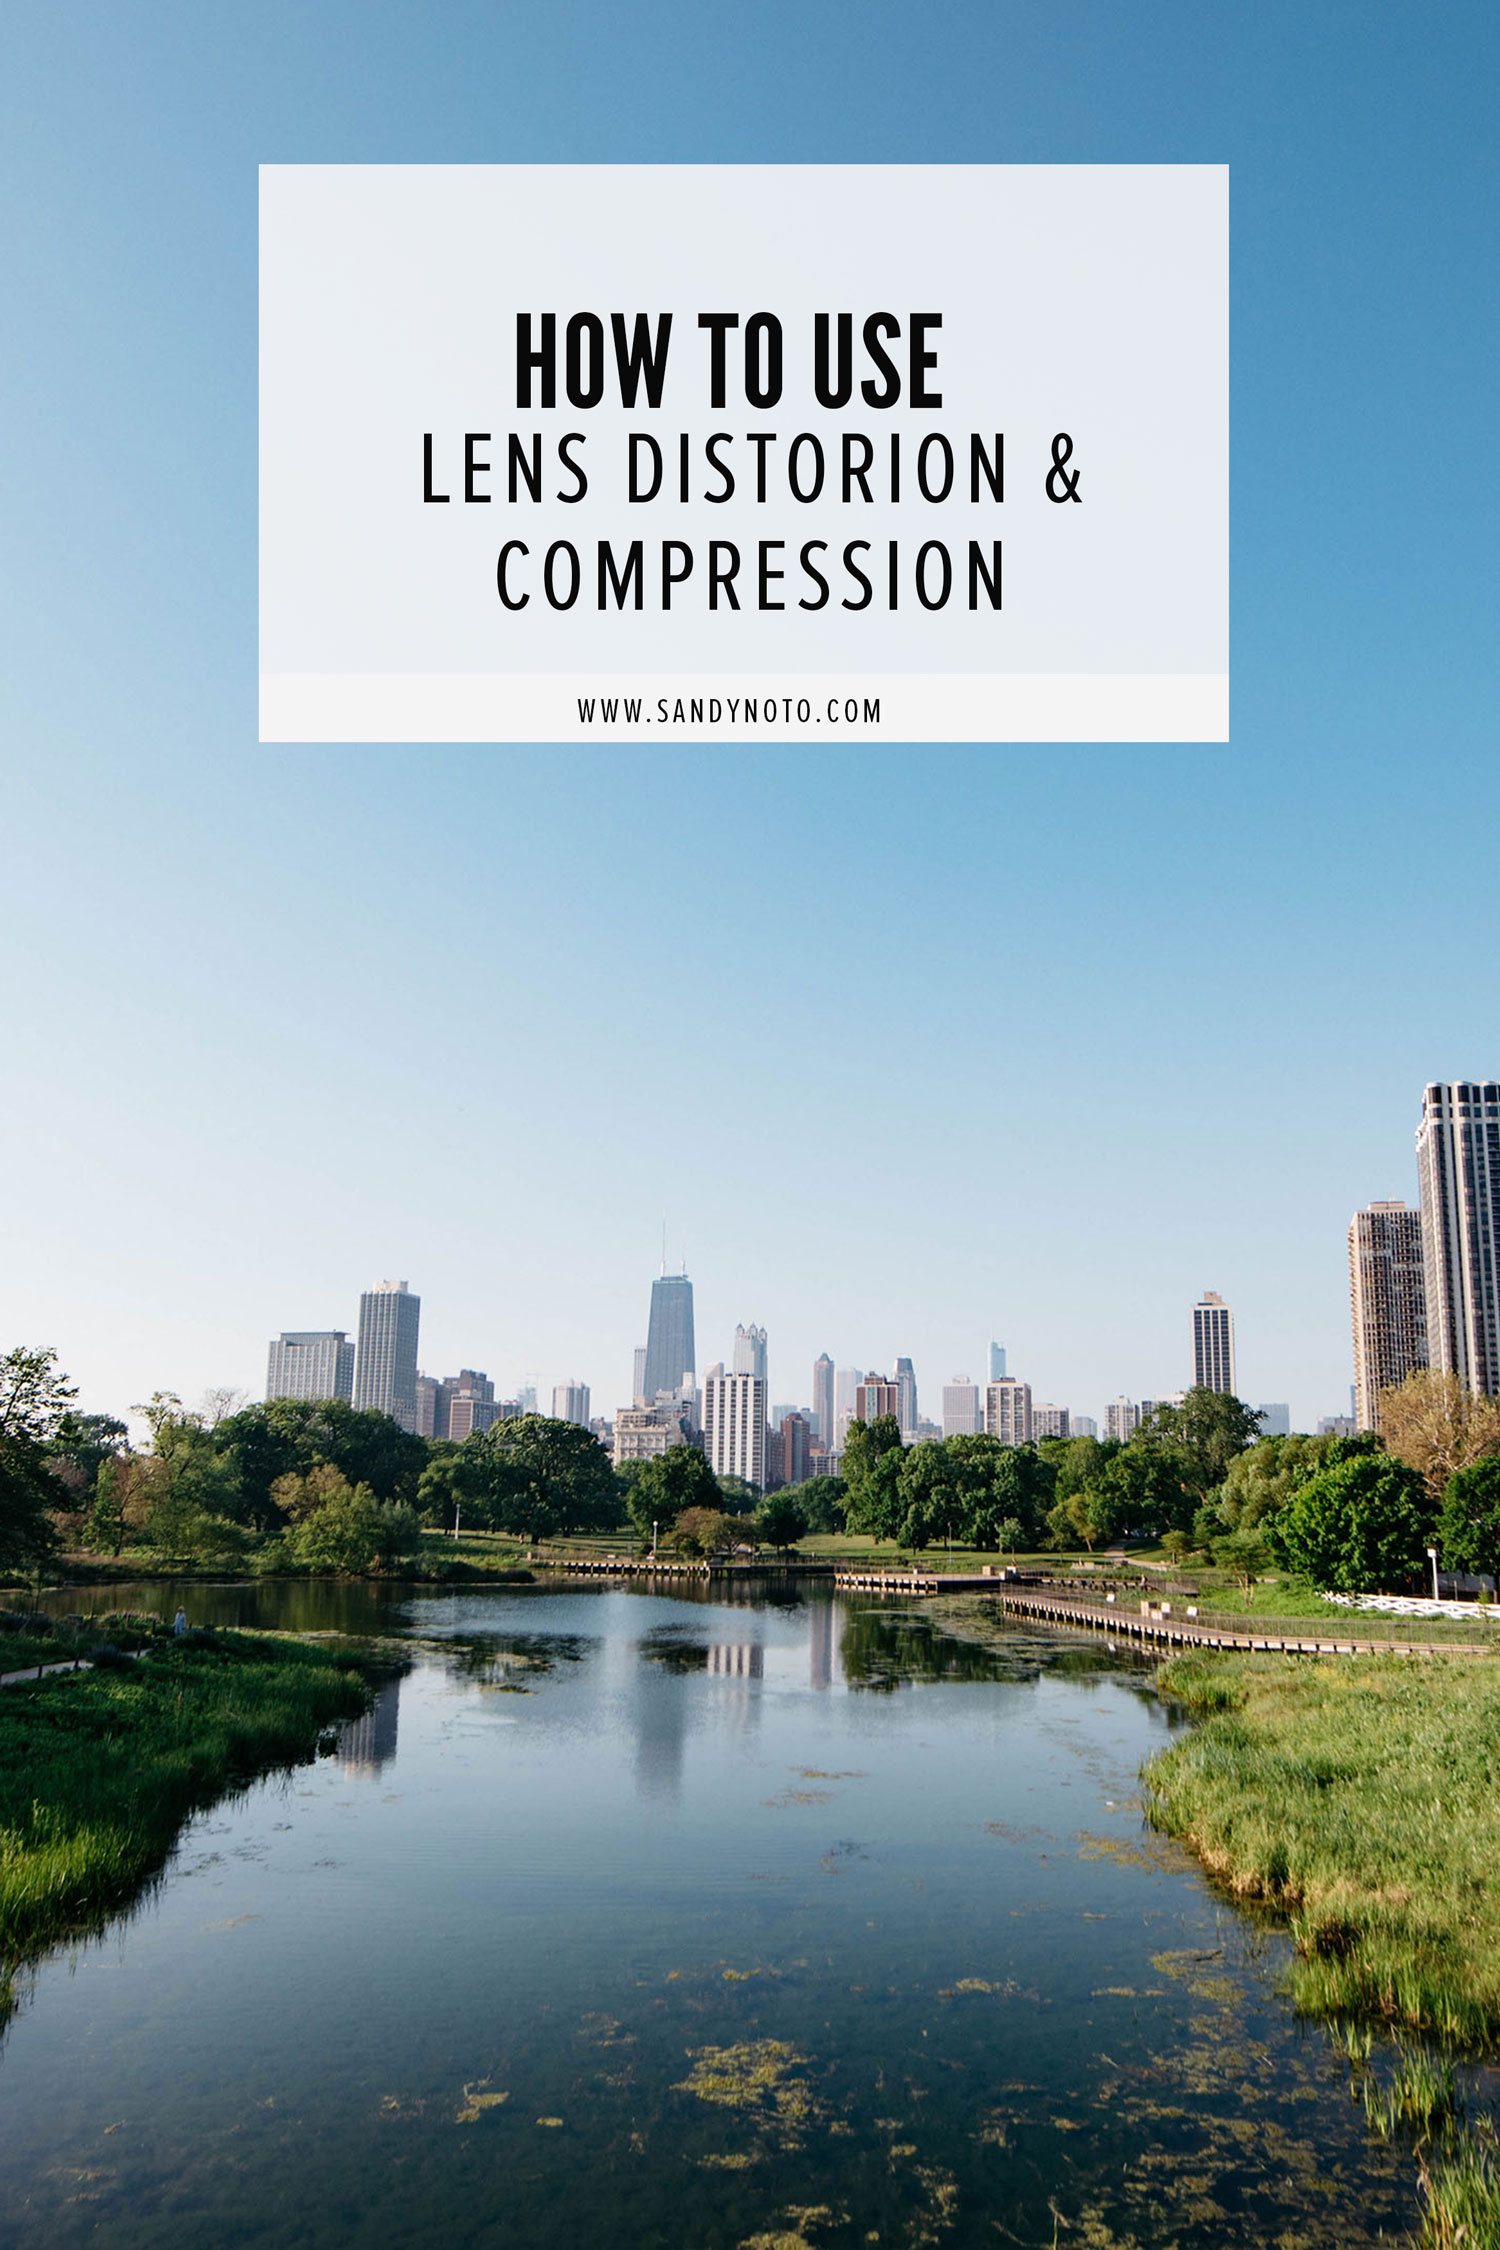 How to use lens distortion & compression